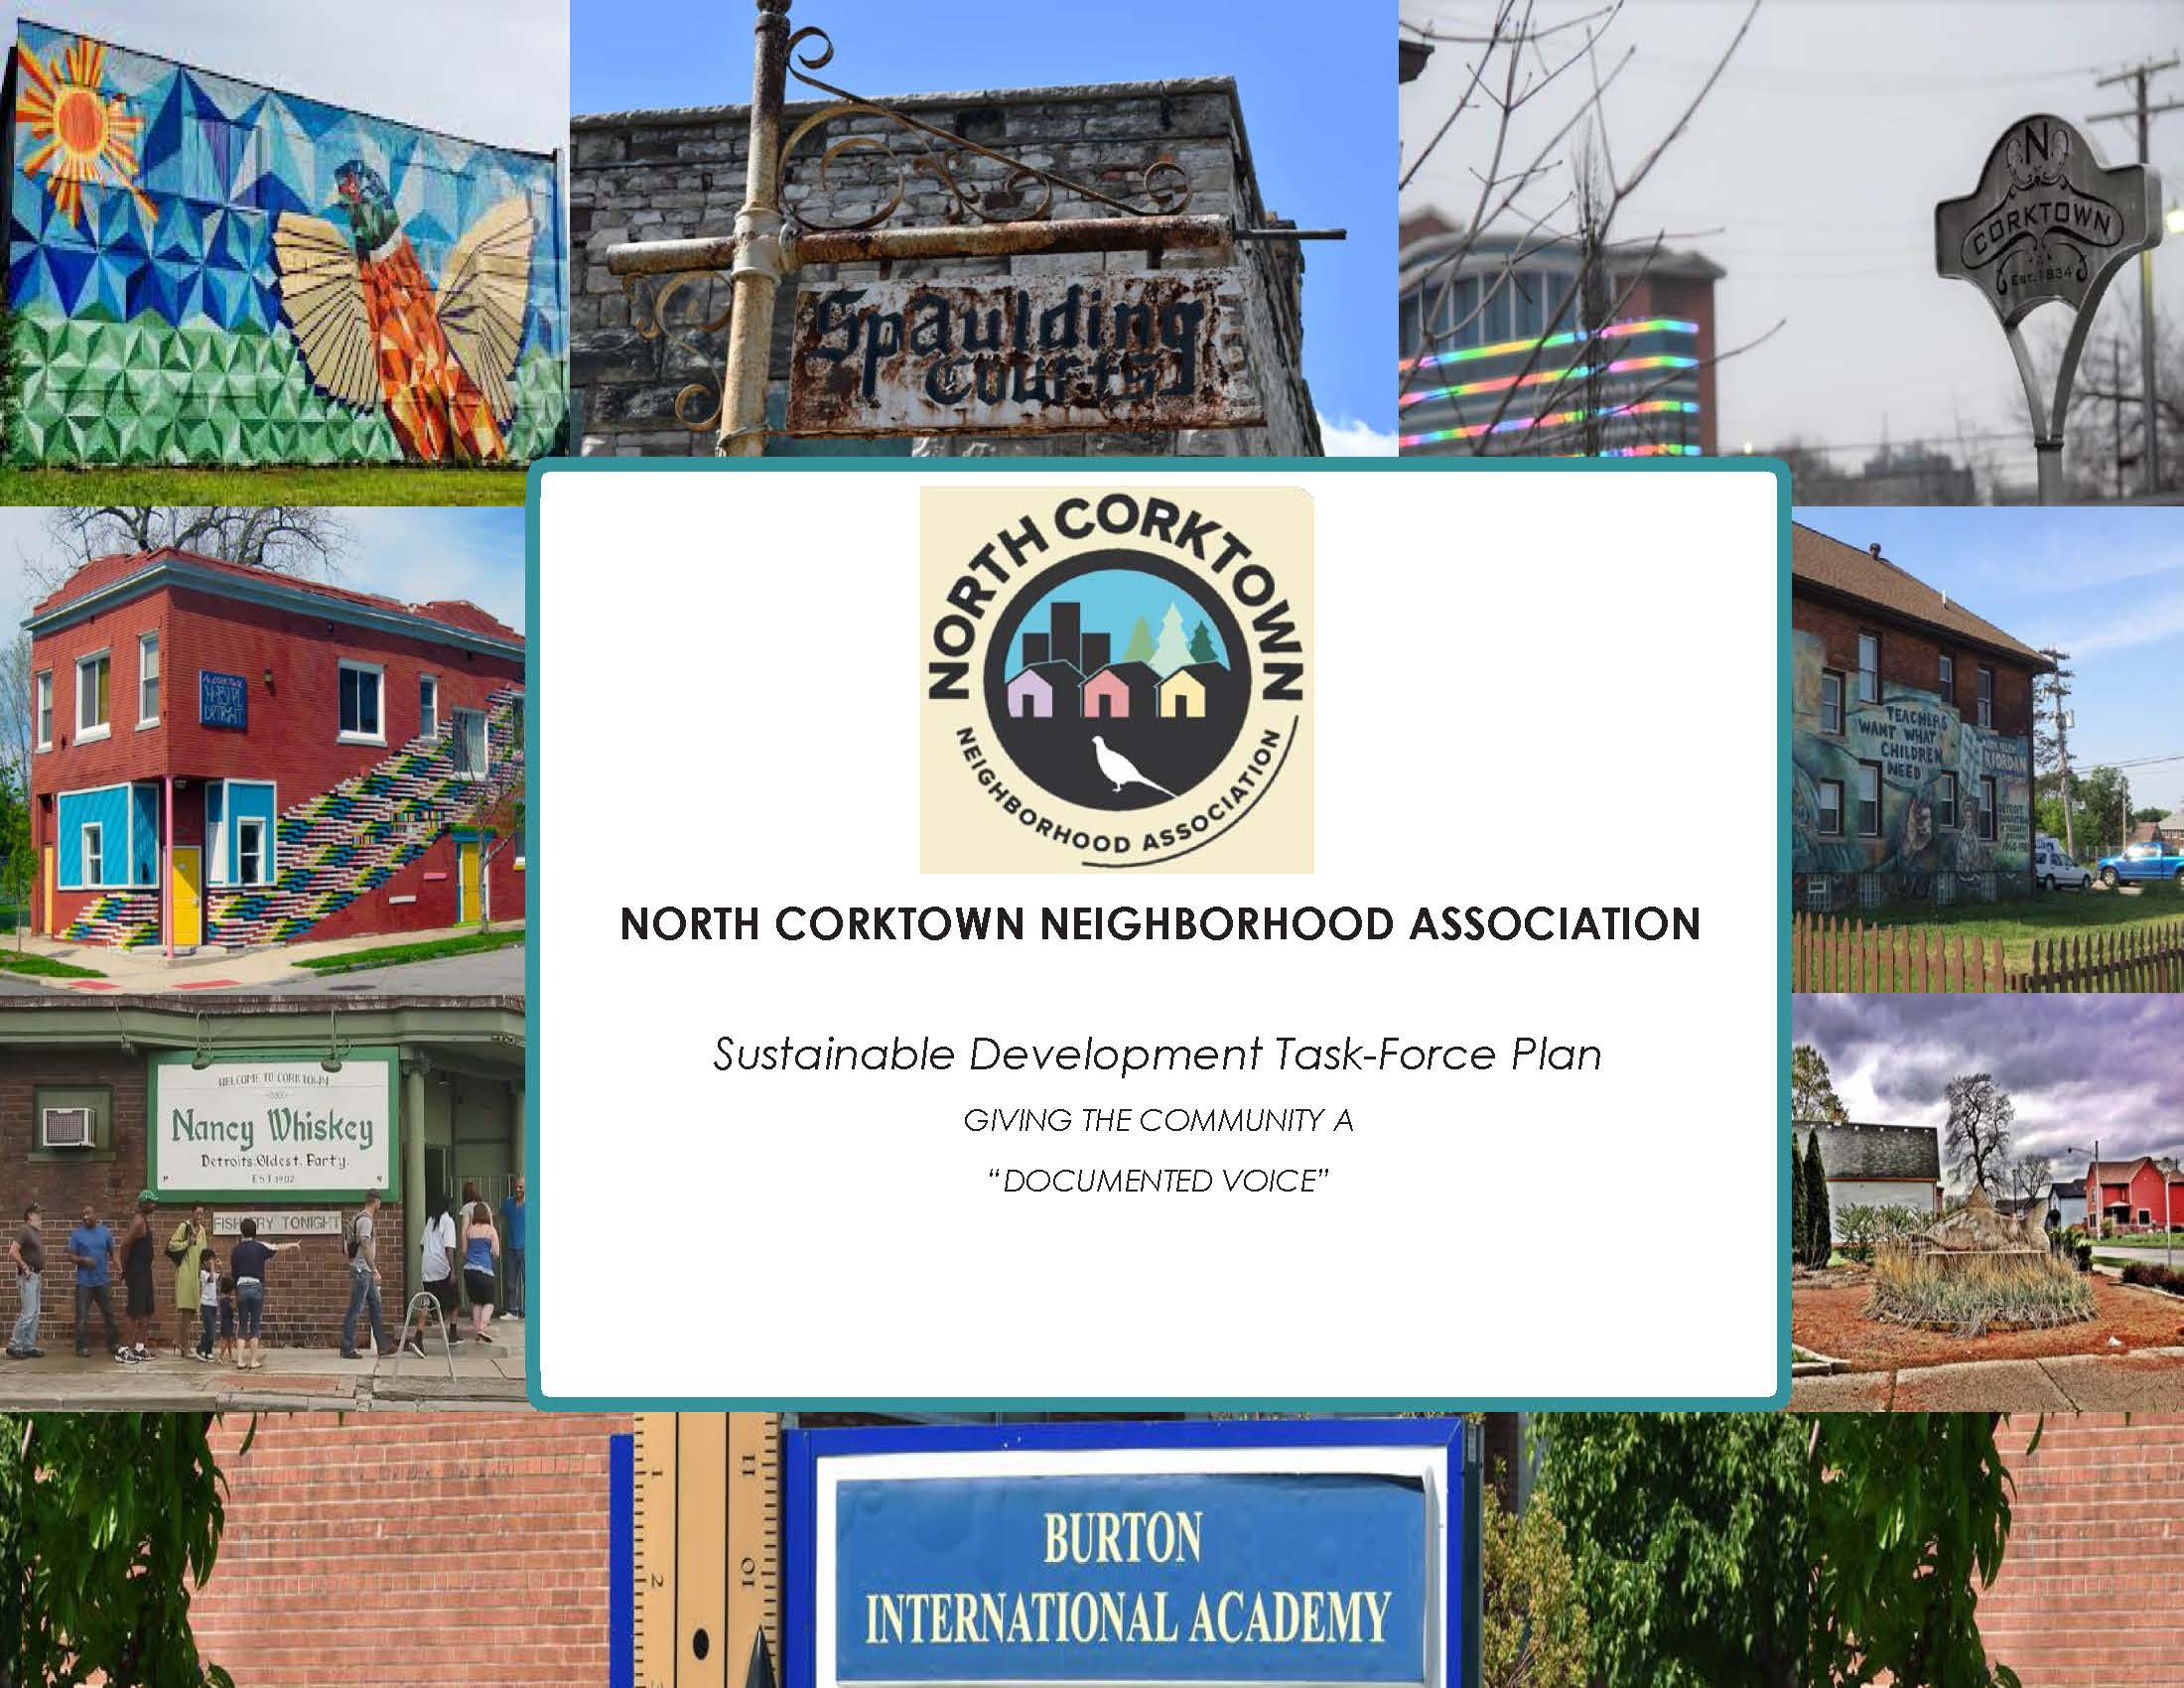 North Corktown Neighborhood Association Sustainable Development Task-Force Plan